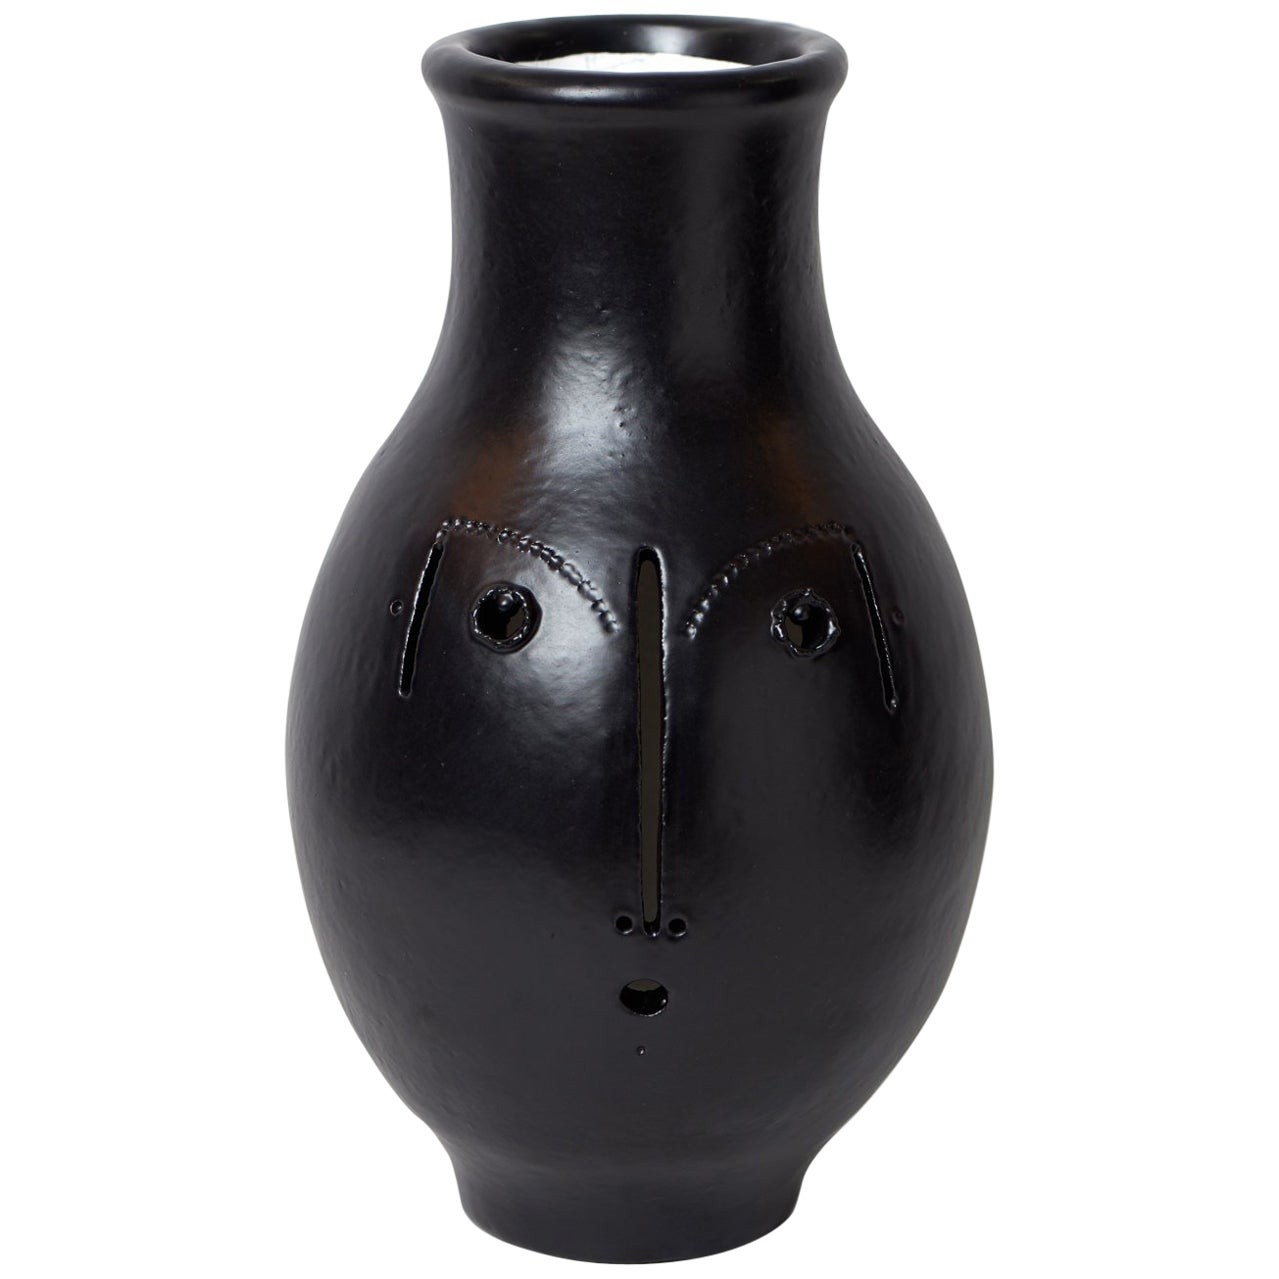 Large One of a Kind Ceramic Vase Signed by Dalo